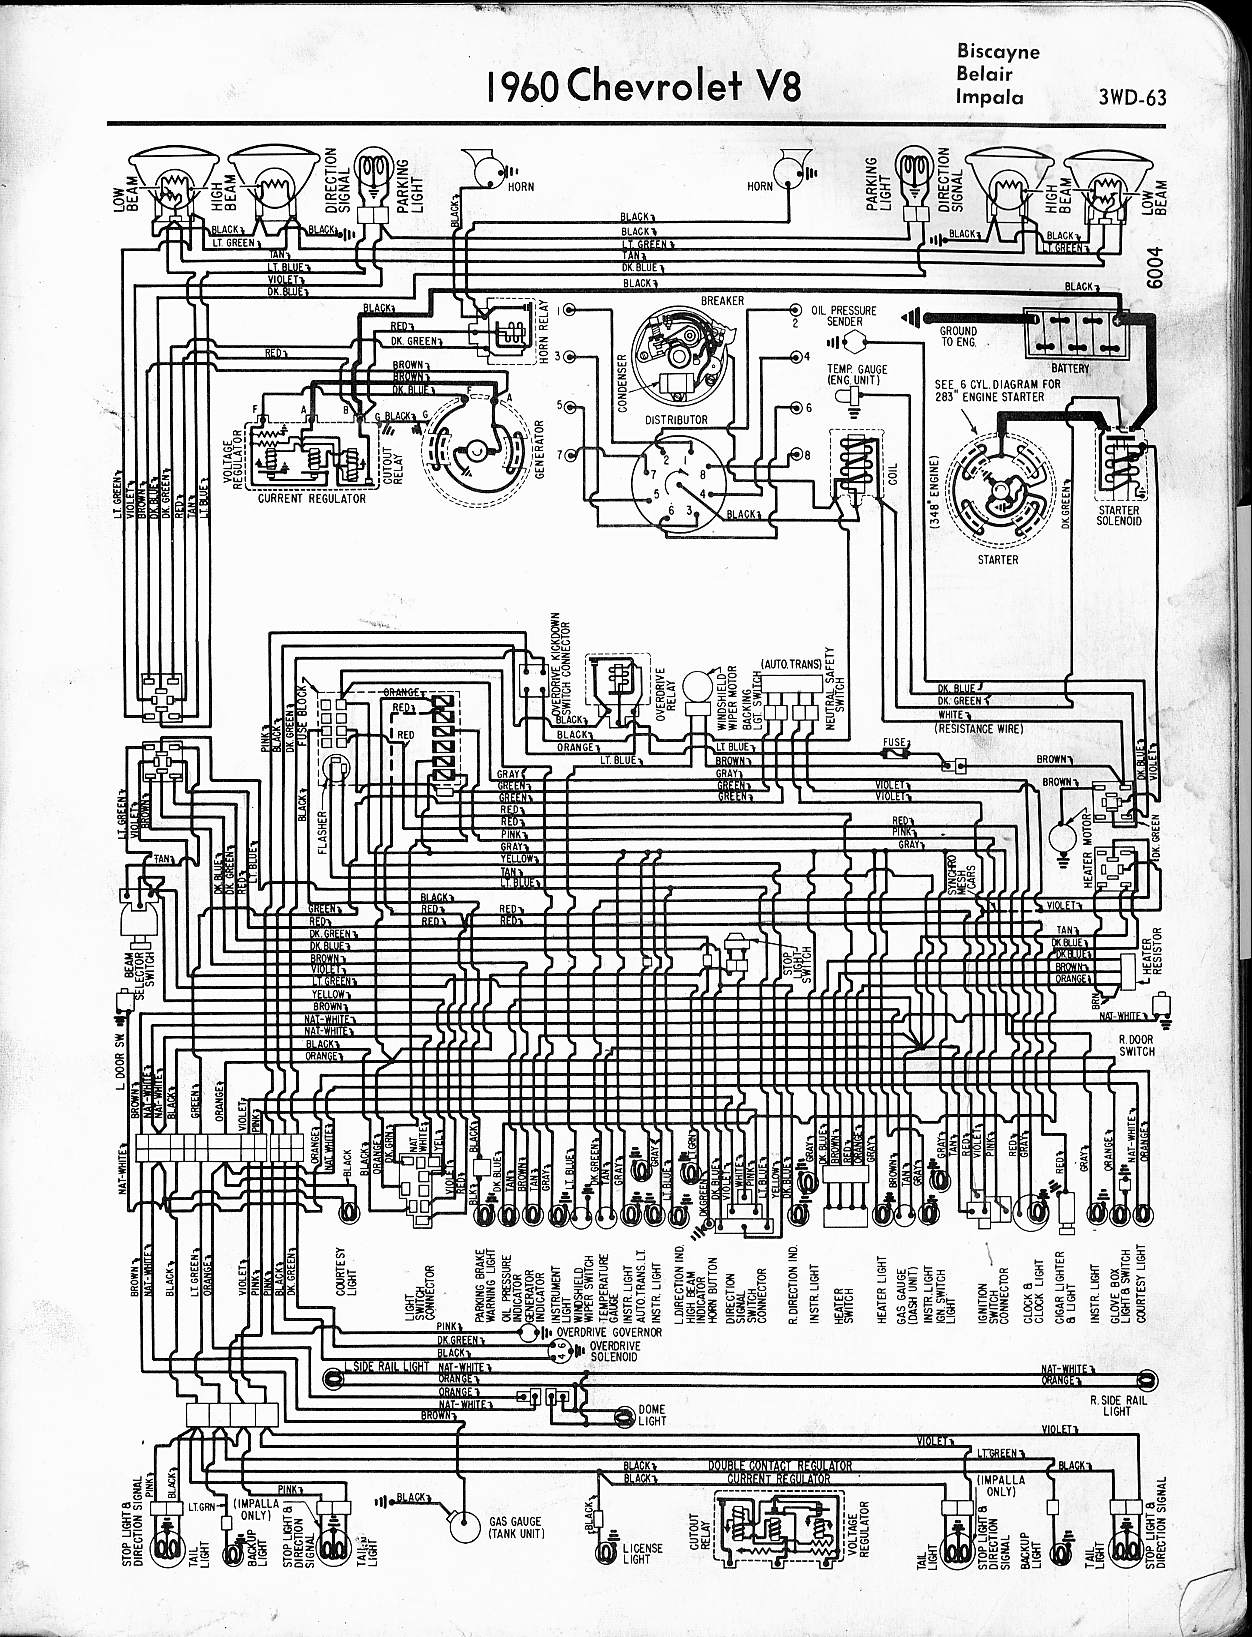 MWireChev60_3WD 063 57 65 chevy wiring diagrams 1962 impala wiring diagram at virtualis.co